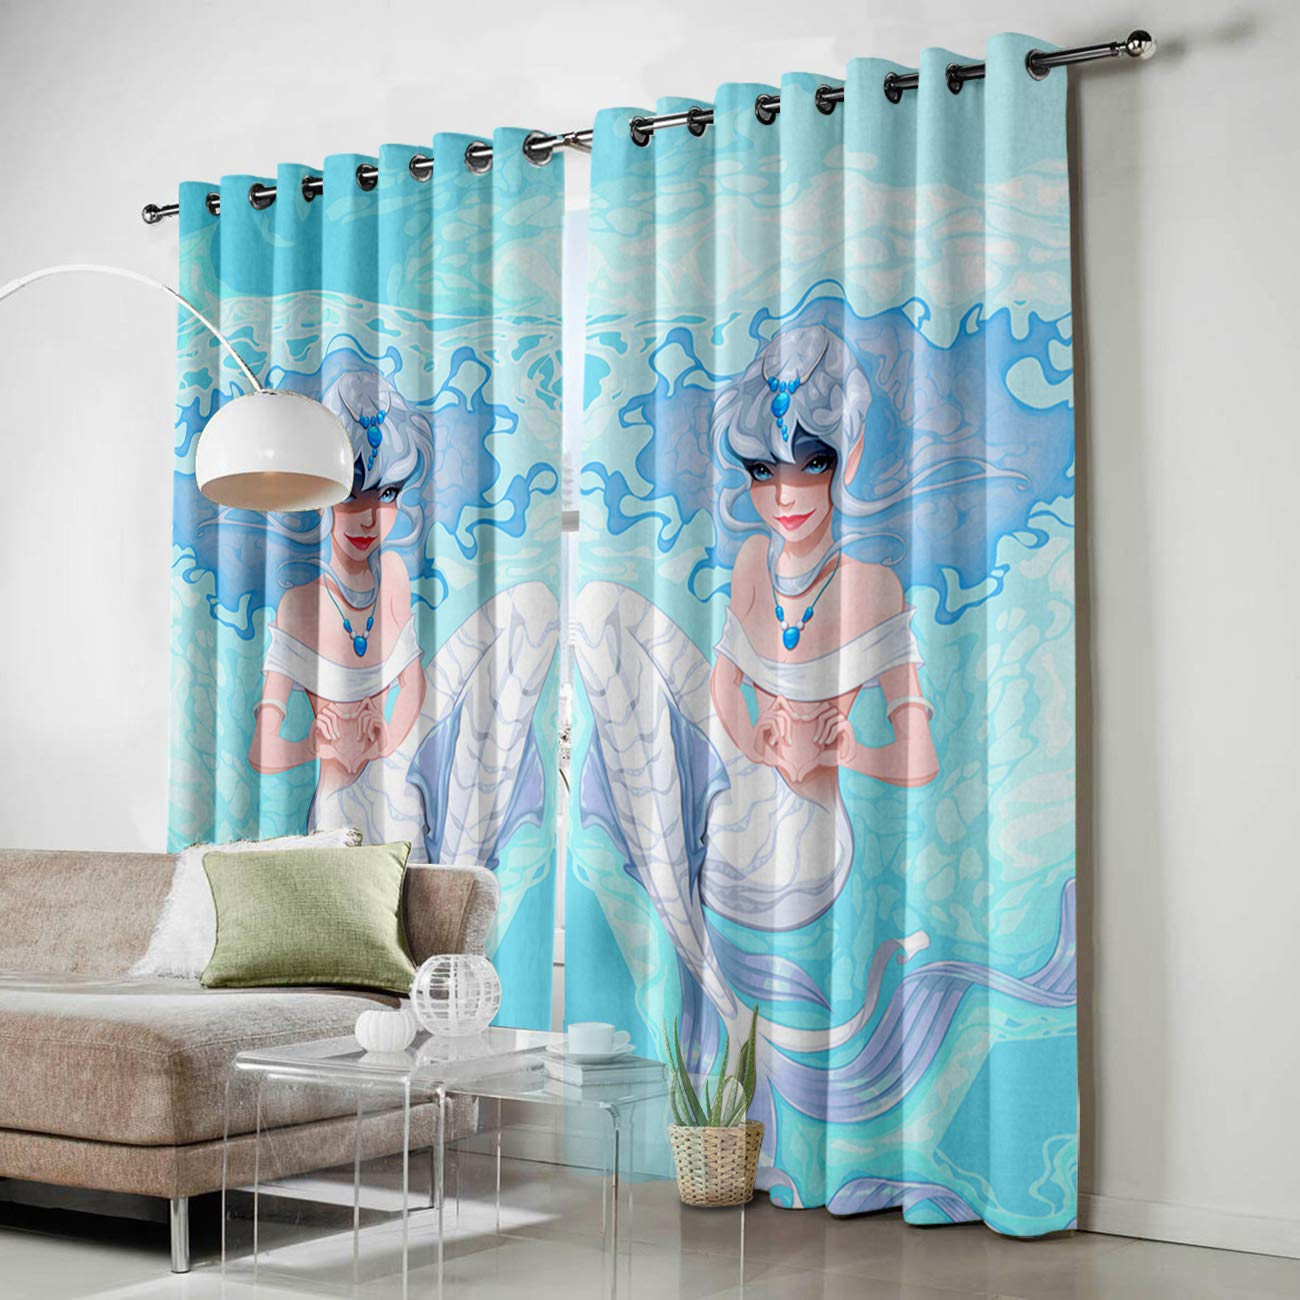 Best Nautical & Sea Themed Window Roller Blinds Reviews in 2020 4